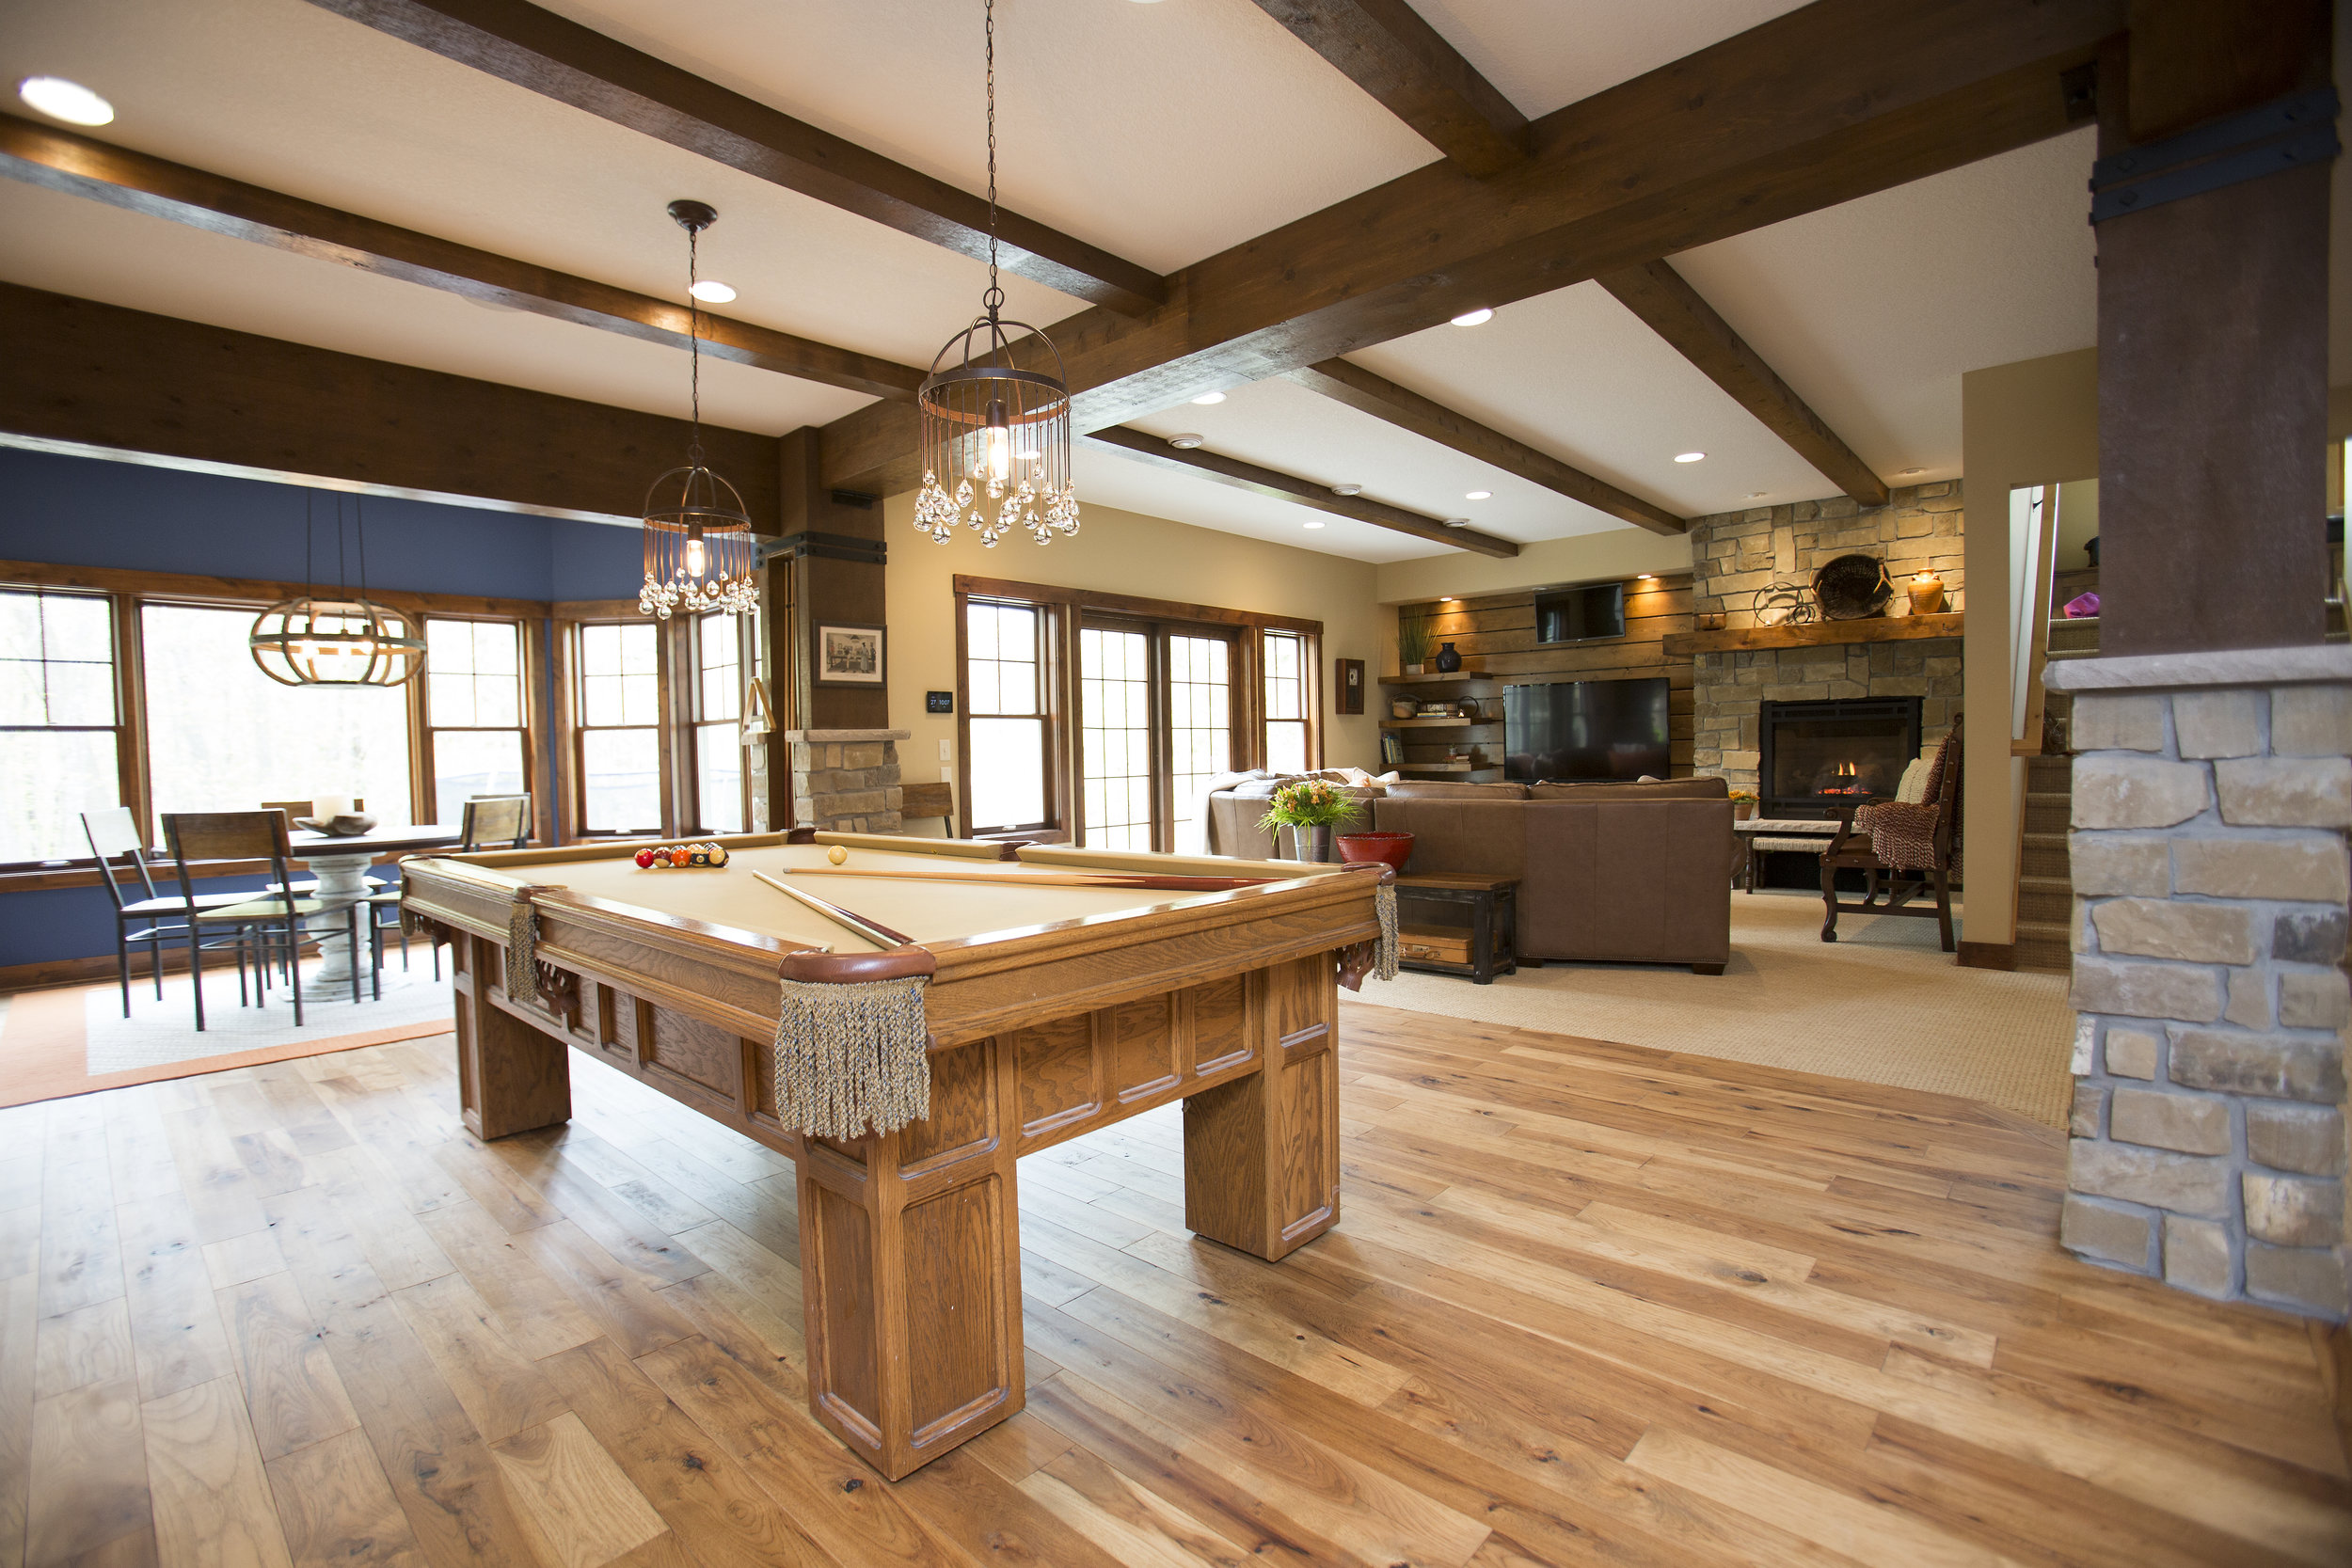 Wood remodeled pool table in an open style living room